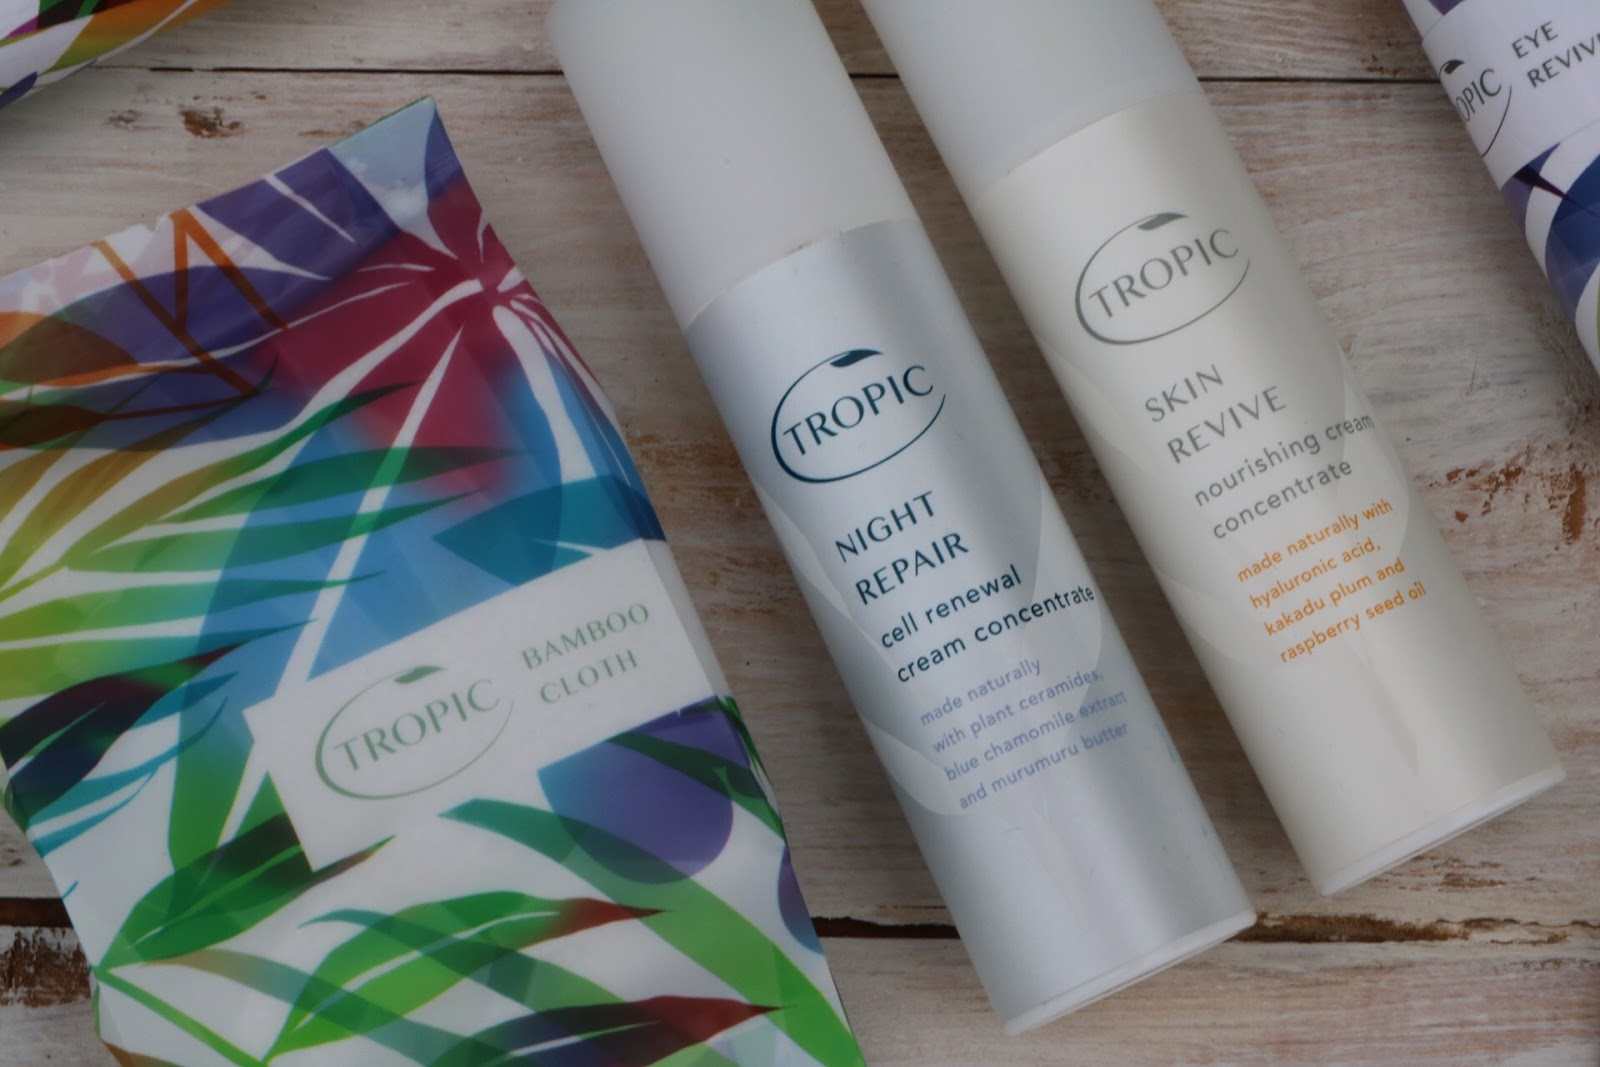 Tropic Products - Bamboo Cloth, Night Repair & Skin Repair